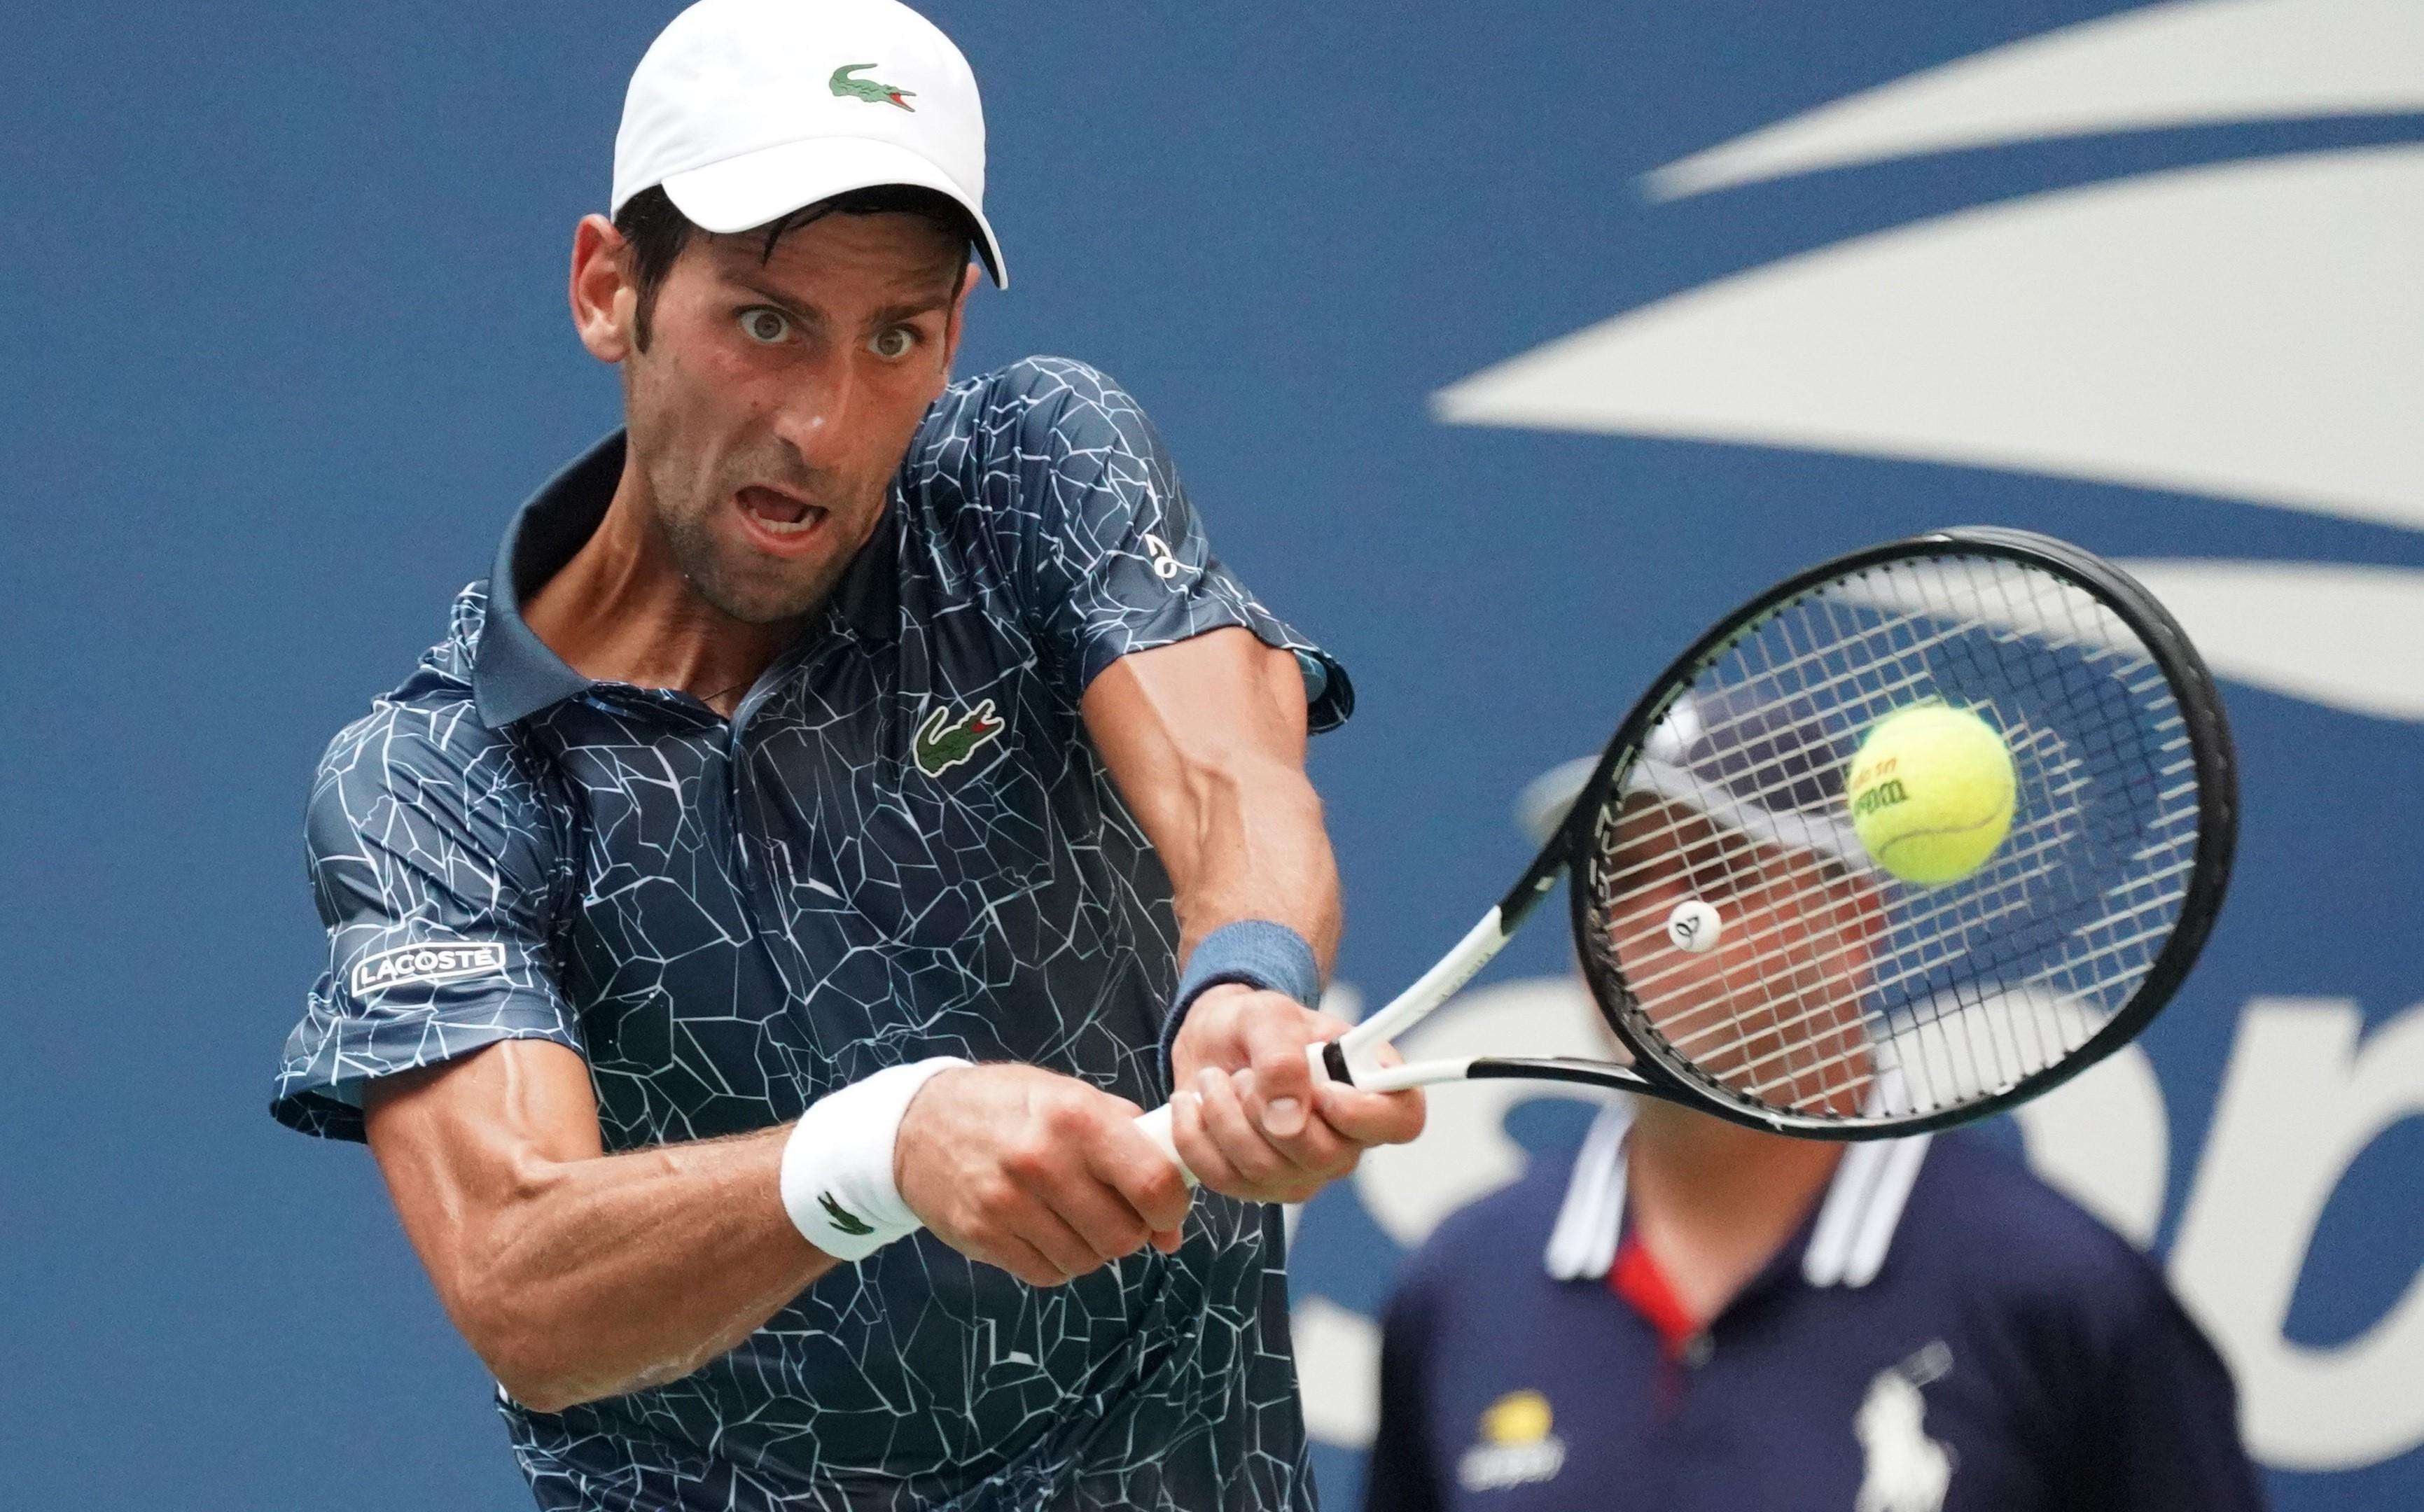 The Serb is looking for his third US Open title having last won in 2015